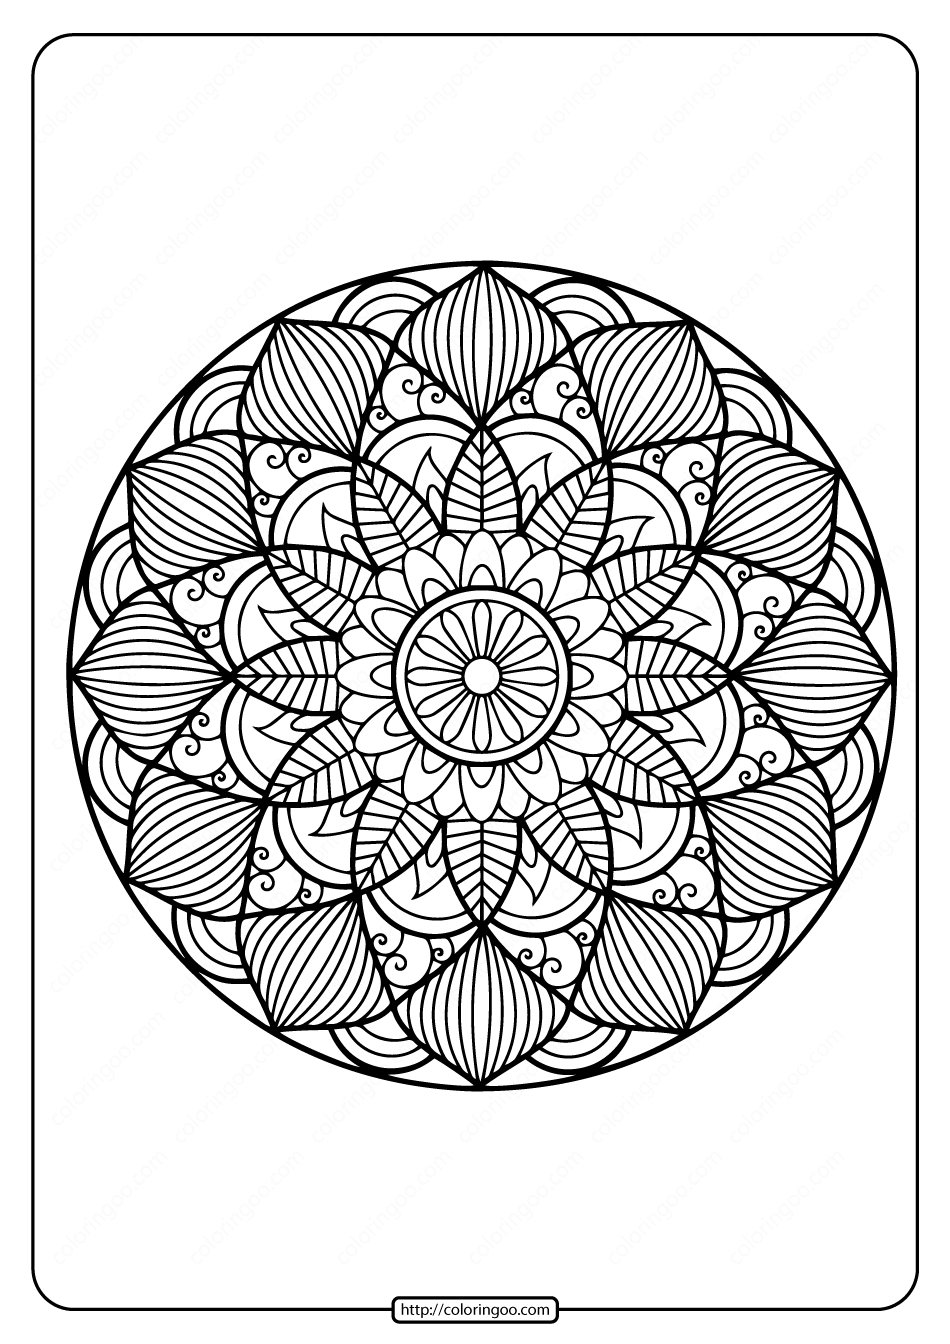 13 Best Fractal Coloring Pages images | Coloring pages, Adult ... | 1344x950